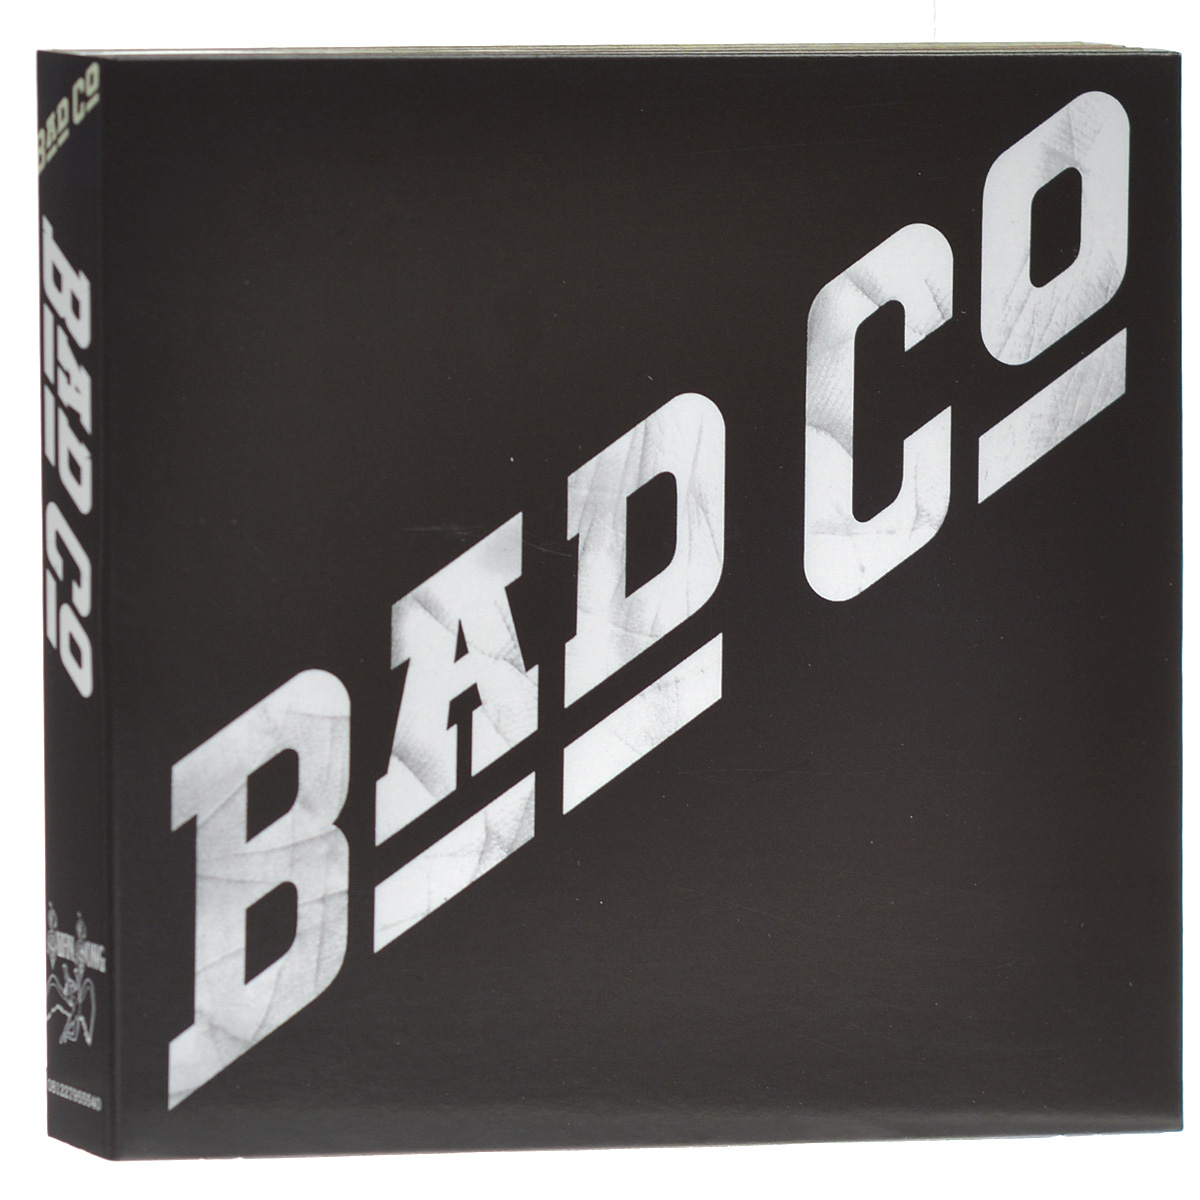 Bad Company Bad Company. Bad Company. Deluxe Edition (2 CD) bad company bad company rock n roll fantasy the very best of bad company 2 lp